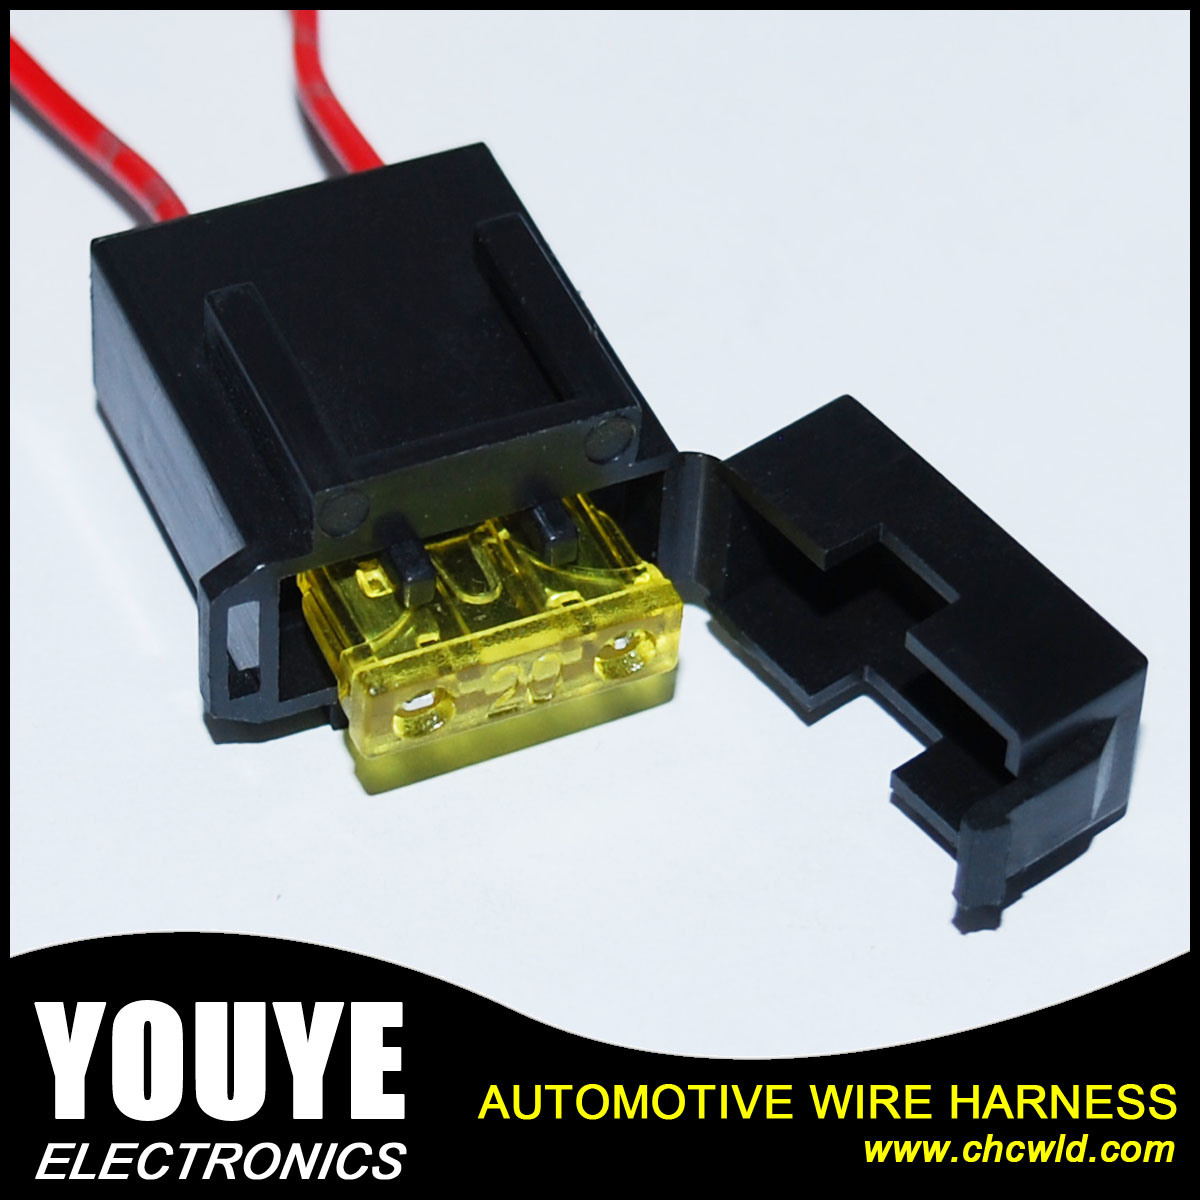 China Youye Automobile Copper Wire Harness Electronic Fuse Box Auto Wiring Chevrolet Cars Iso9001 Ts16949